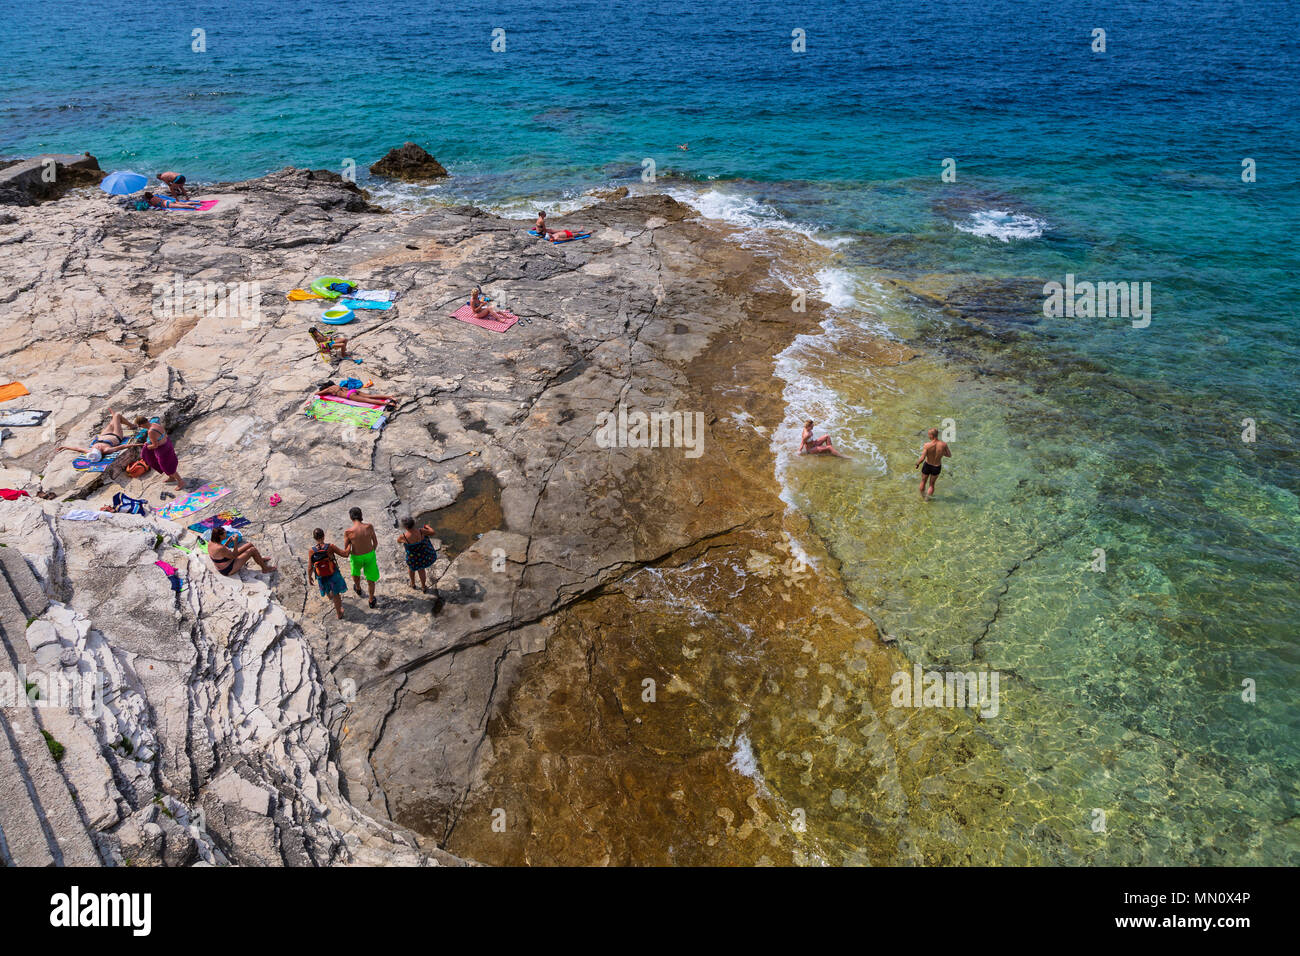 People on a rocky beach in Pula, Punta Verudela, Croatia - Stock Image